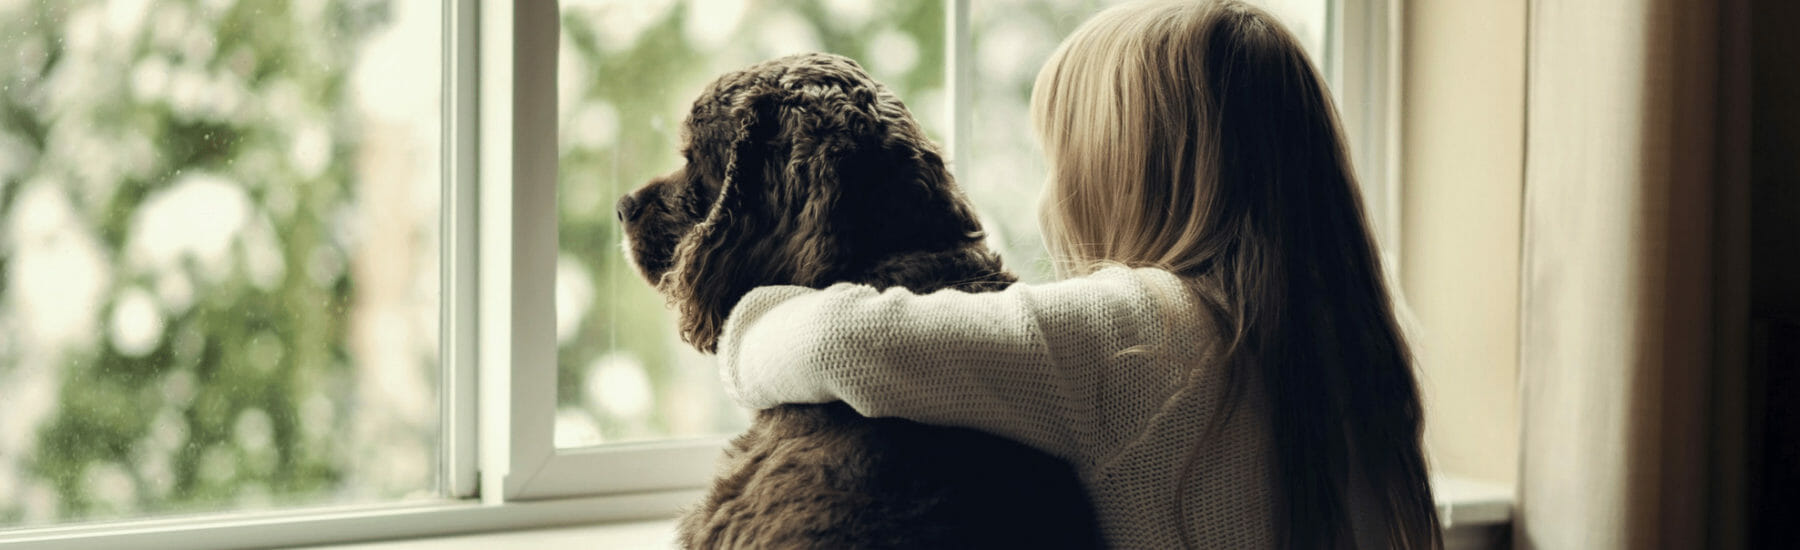 Back view of a girl with her arm around a dog